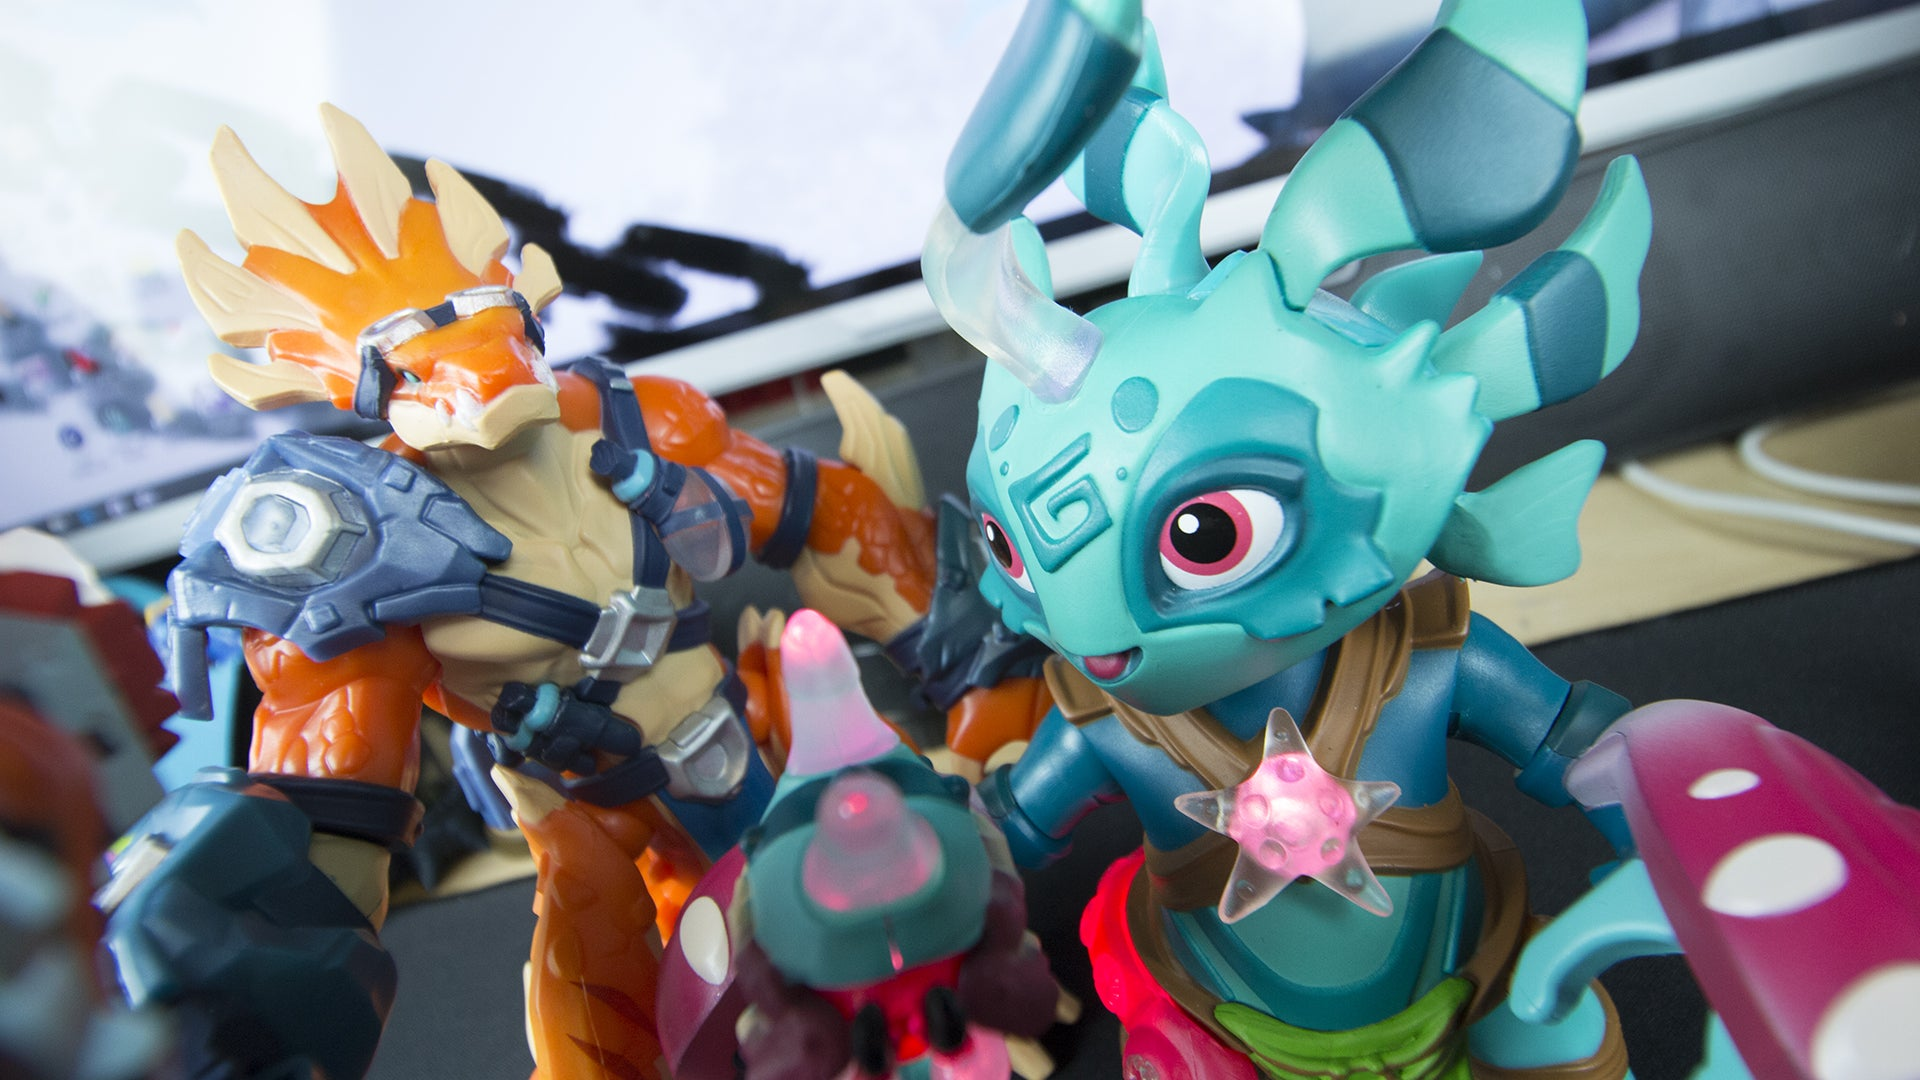 The Toys For The Latest Skylanders-StyleGame Are Too Good